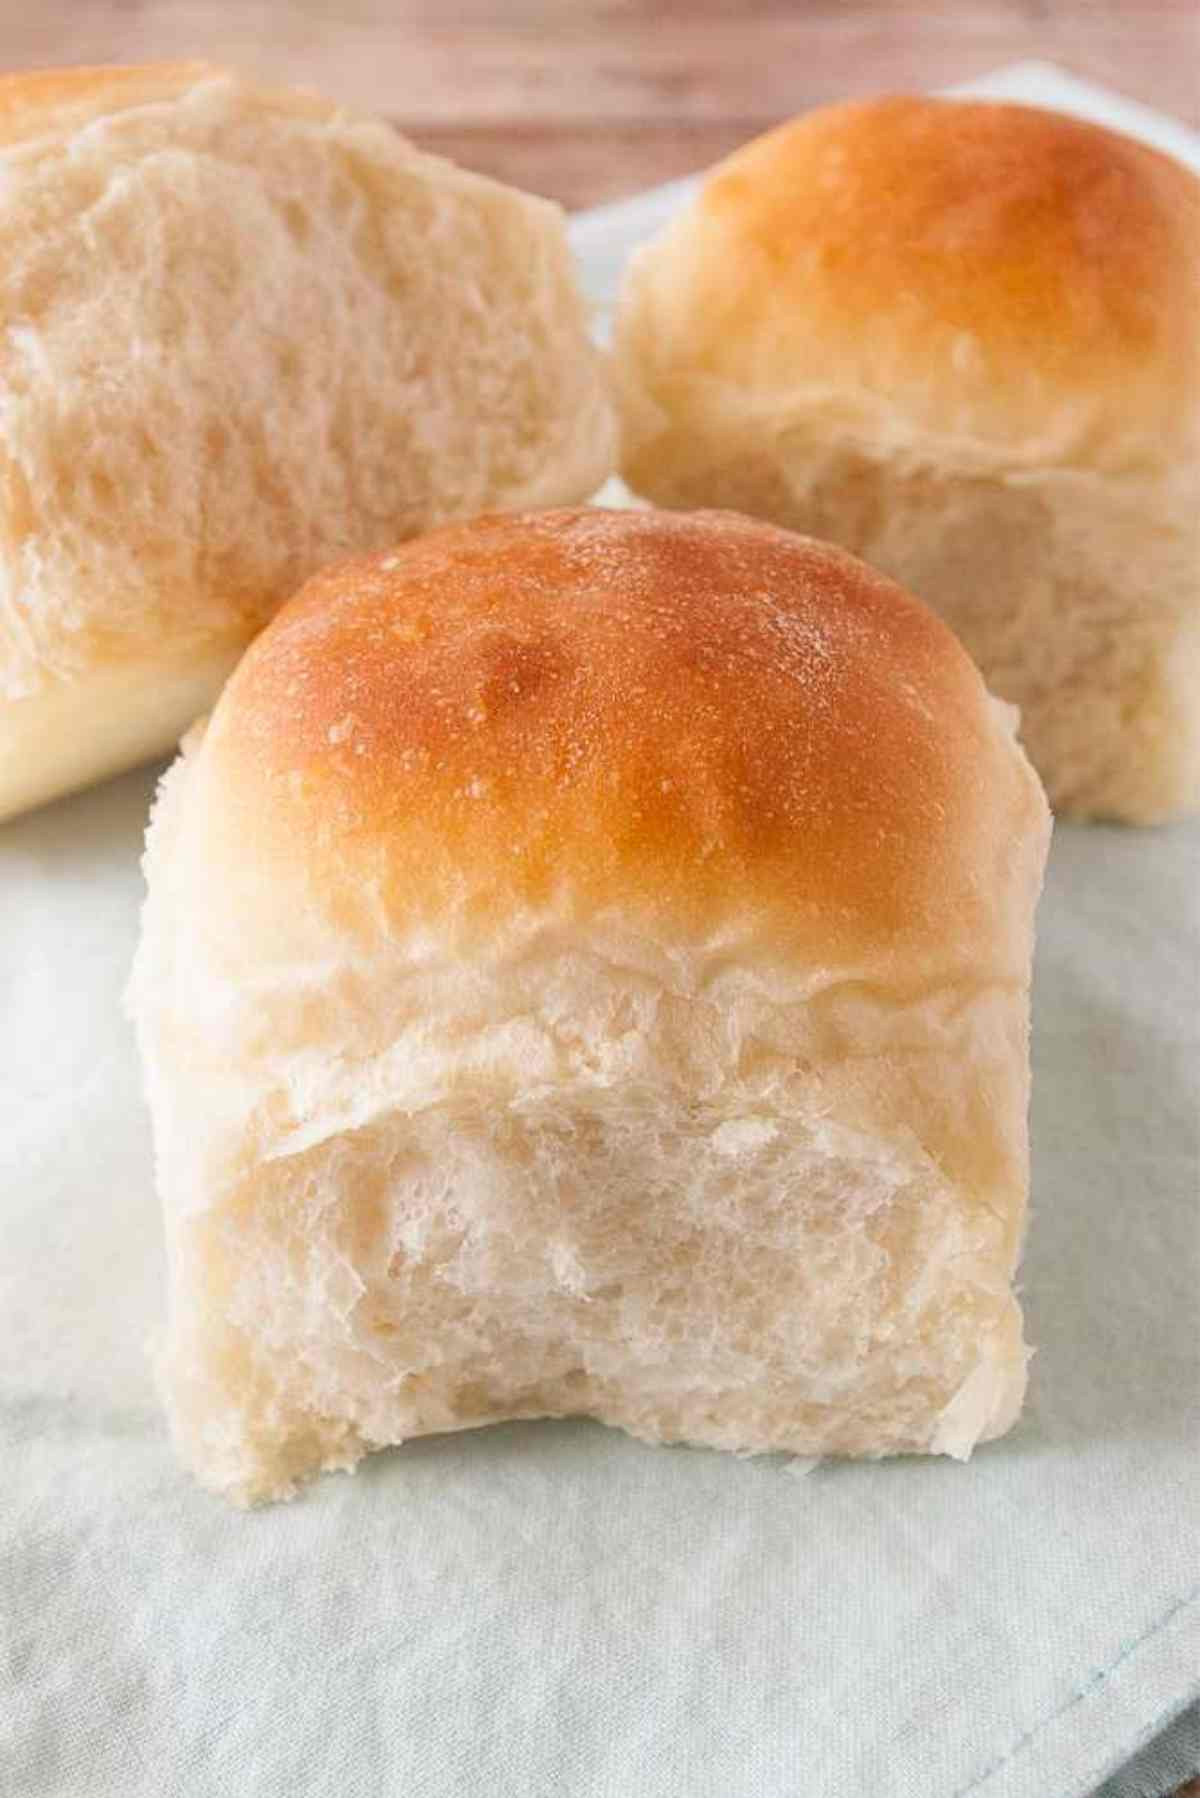 Three 90 minute dinner rolls ready to eat!